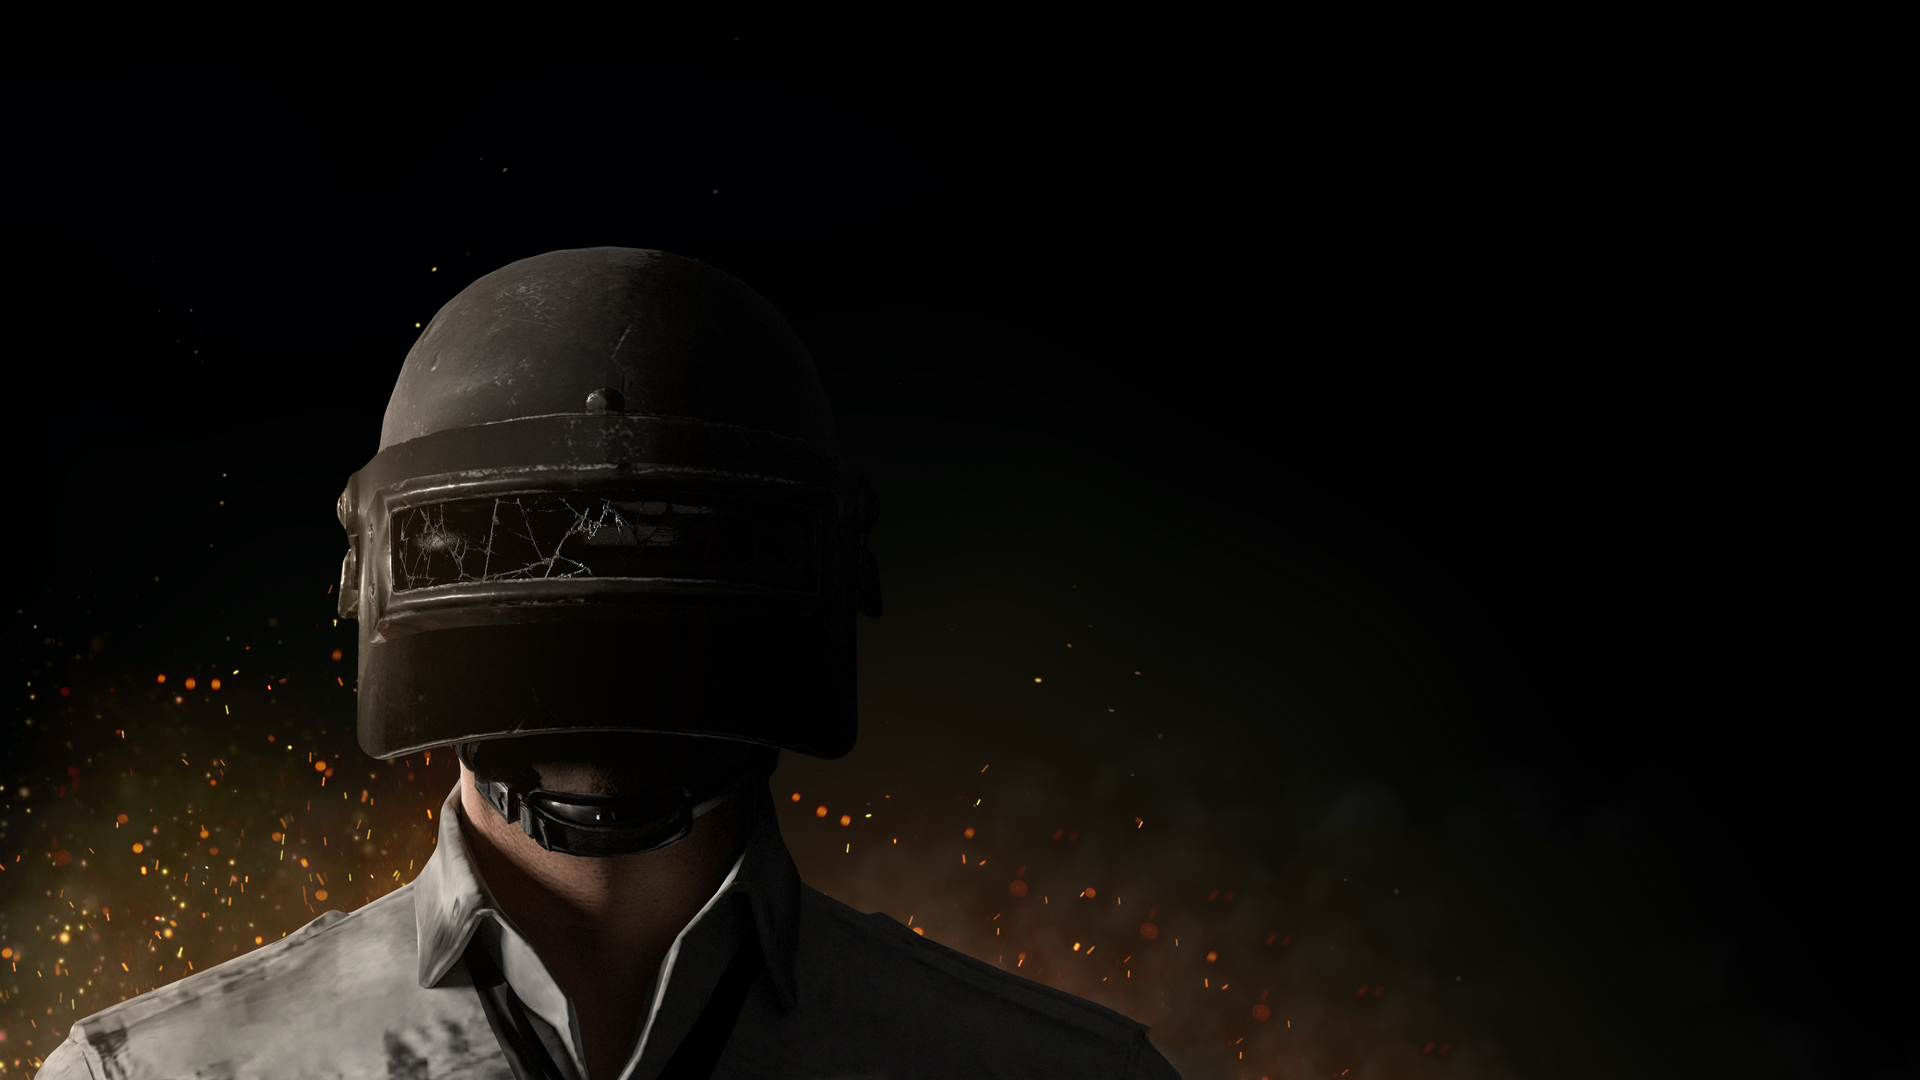 Pubg Wallpapers Hd 1080p: 1920x1080 PUBG Helmet Guy 4k Laptop Full HD 1080P HD 4k